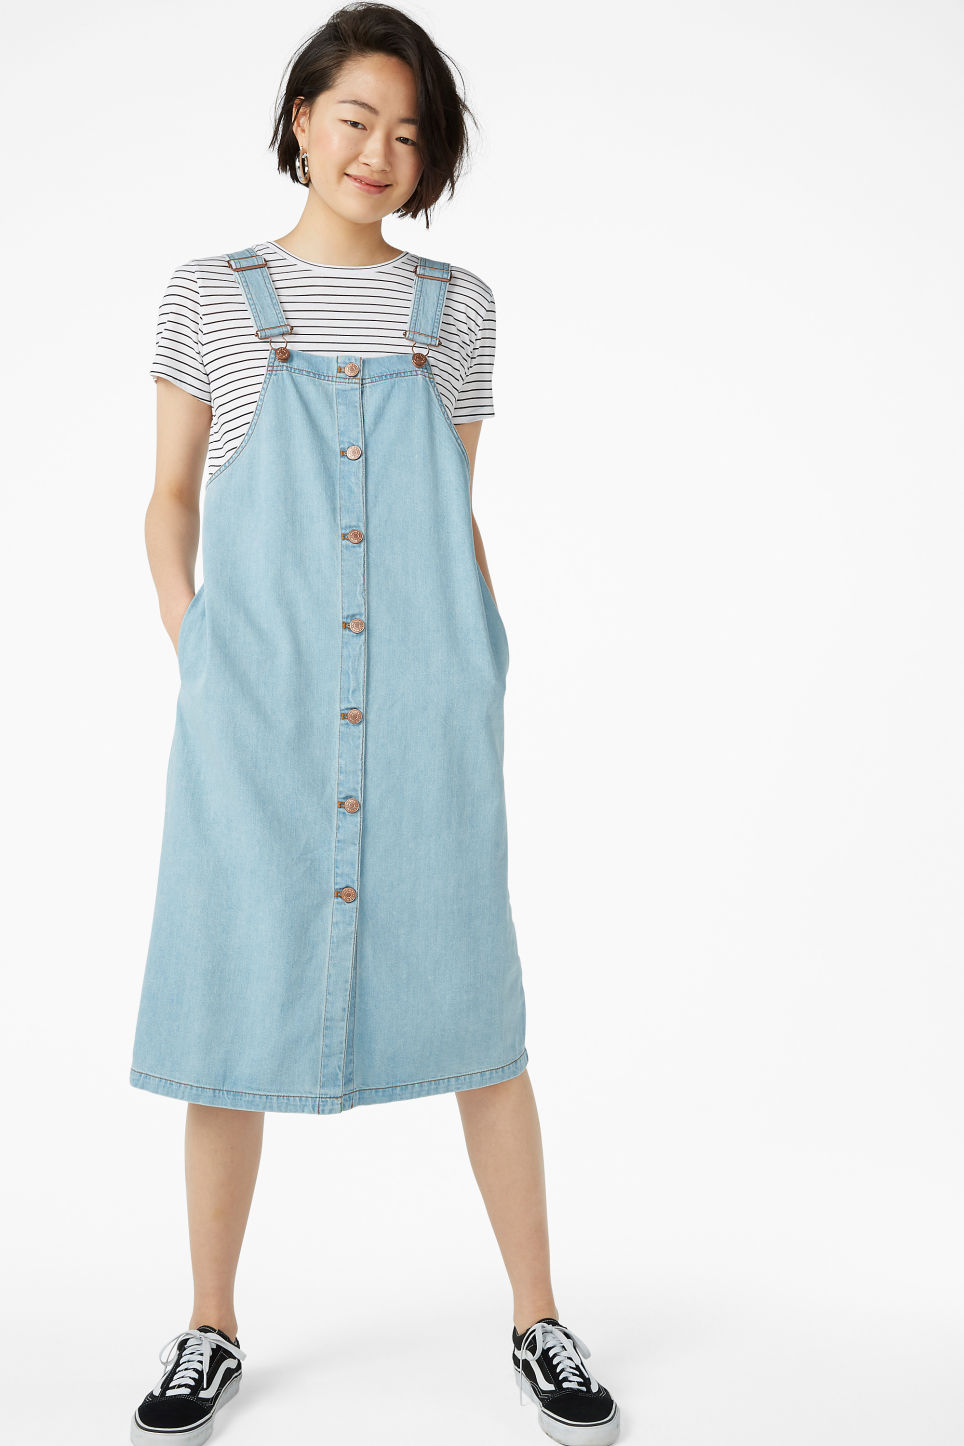 840c55f7c8 Denim pinafore dress - Bleach blonde denim - Dresses - Monki